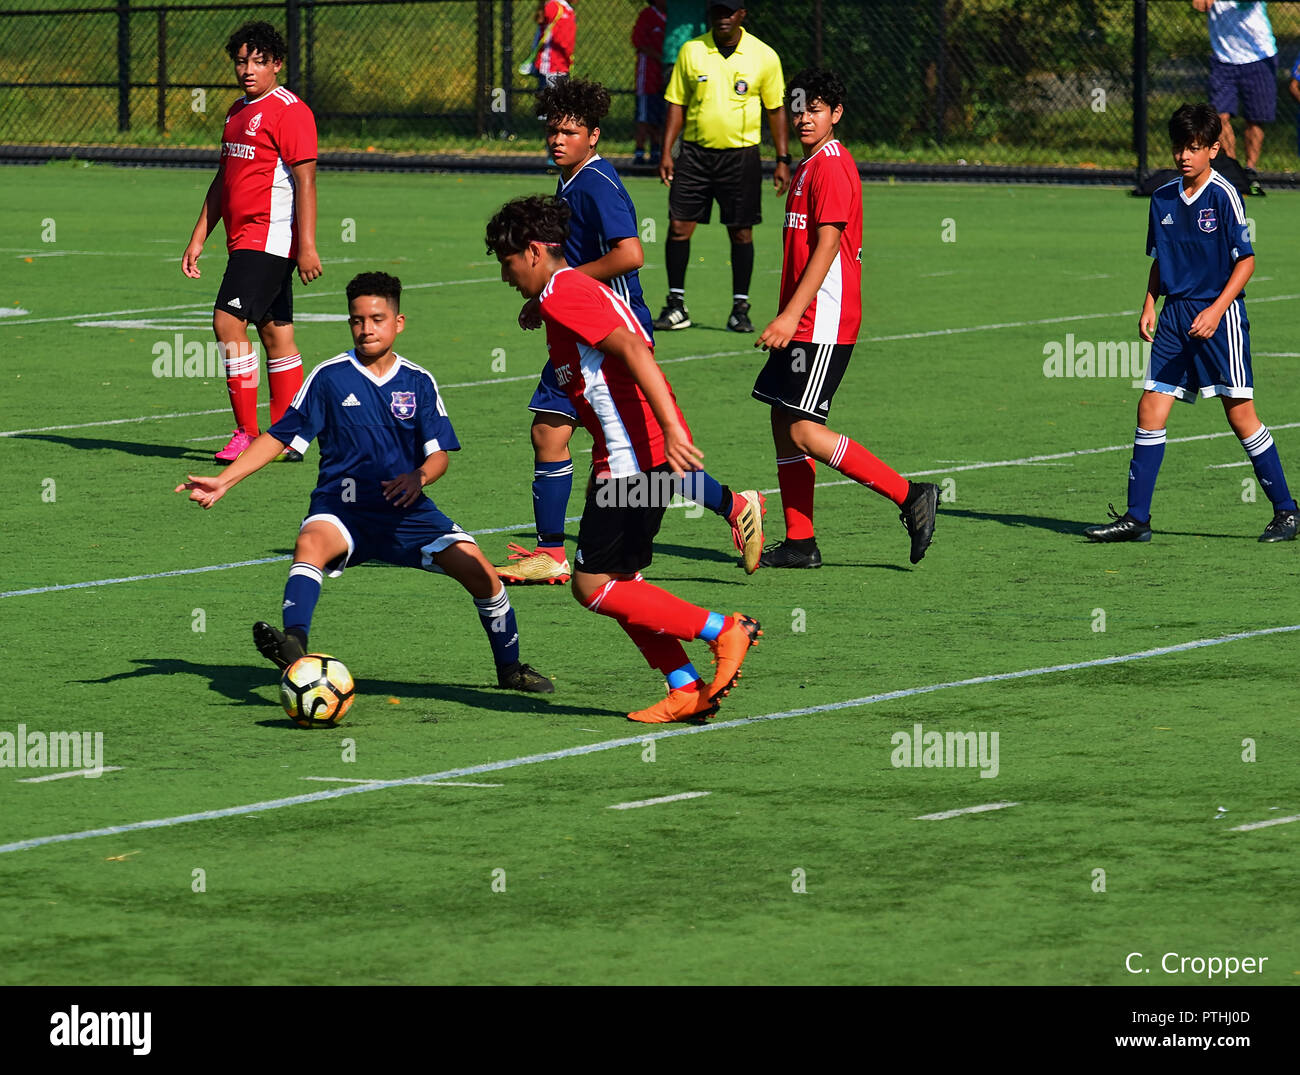 Youths playing organized soccer on field - Stock Image